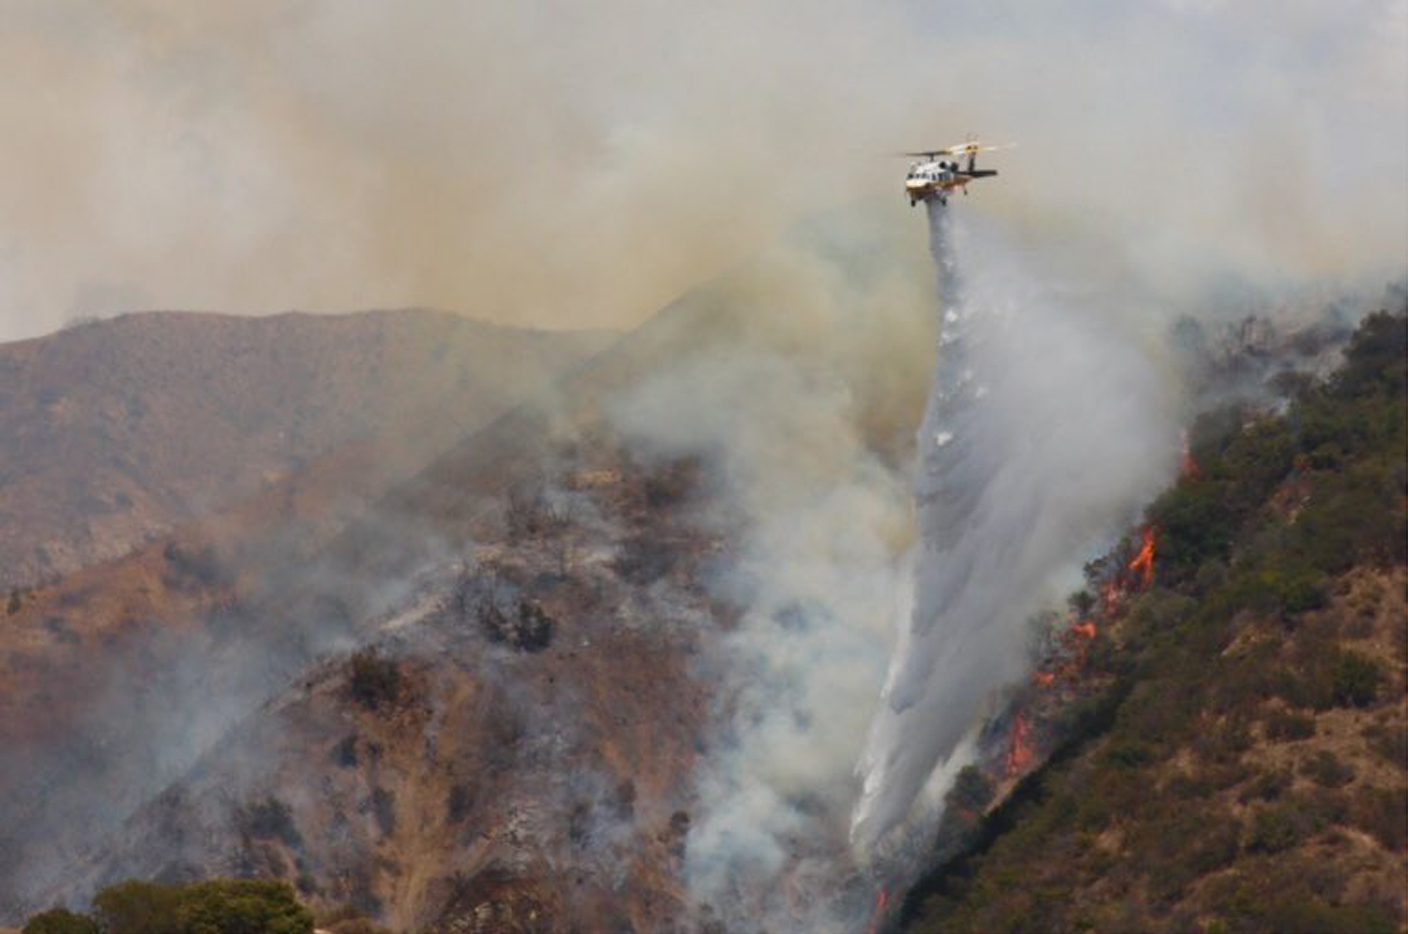 A 45-acre fire in the Burbank on July 7, 2018, had forced the evacuation of 40 homes, an official with the city of Burbank said. (Credit: City of Burbank Twitter account)